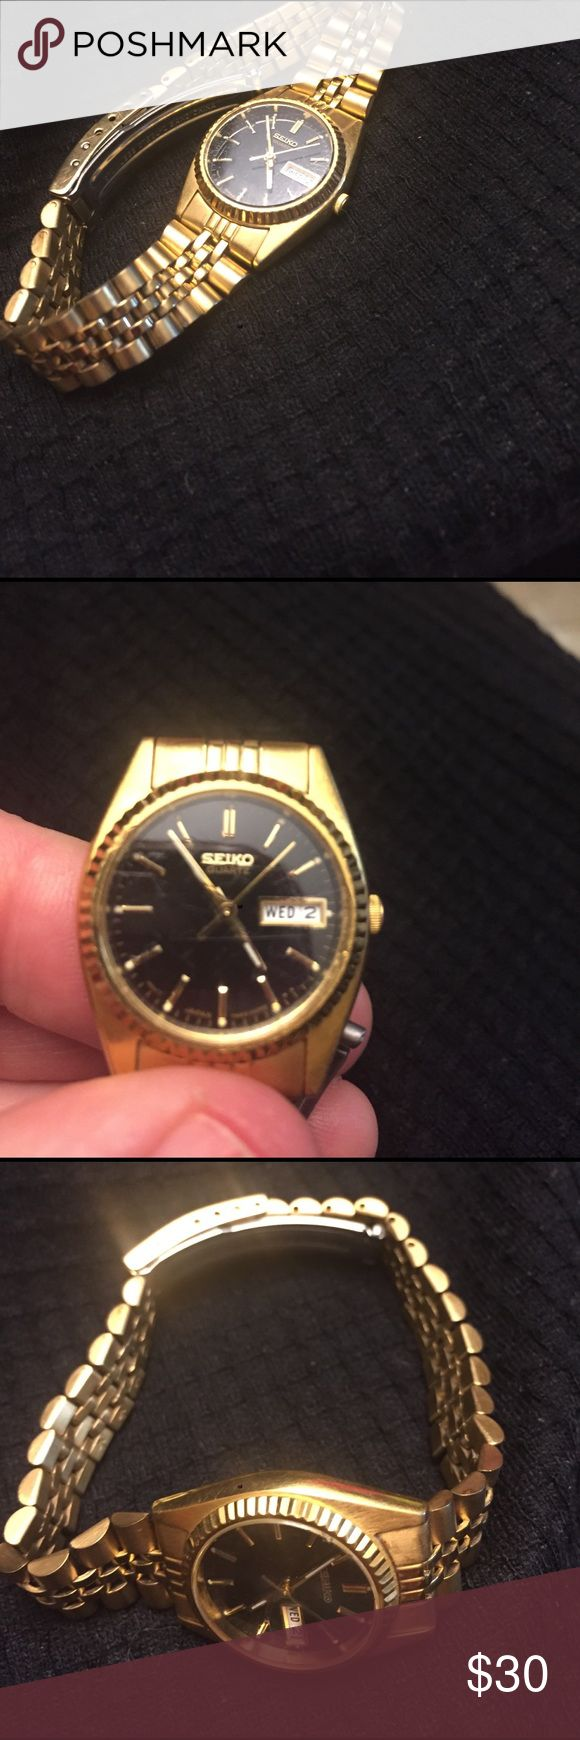 Seiko gold watch Gold seiko ladies watch, black face.  Small scuffs on crystal.  Will replace battery for buyer Accessories Watches